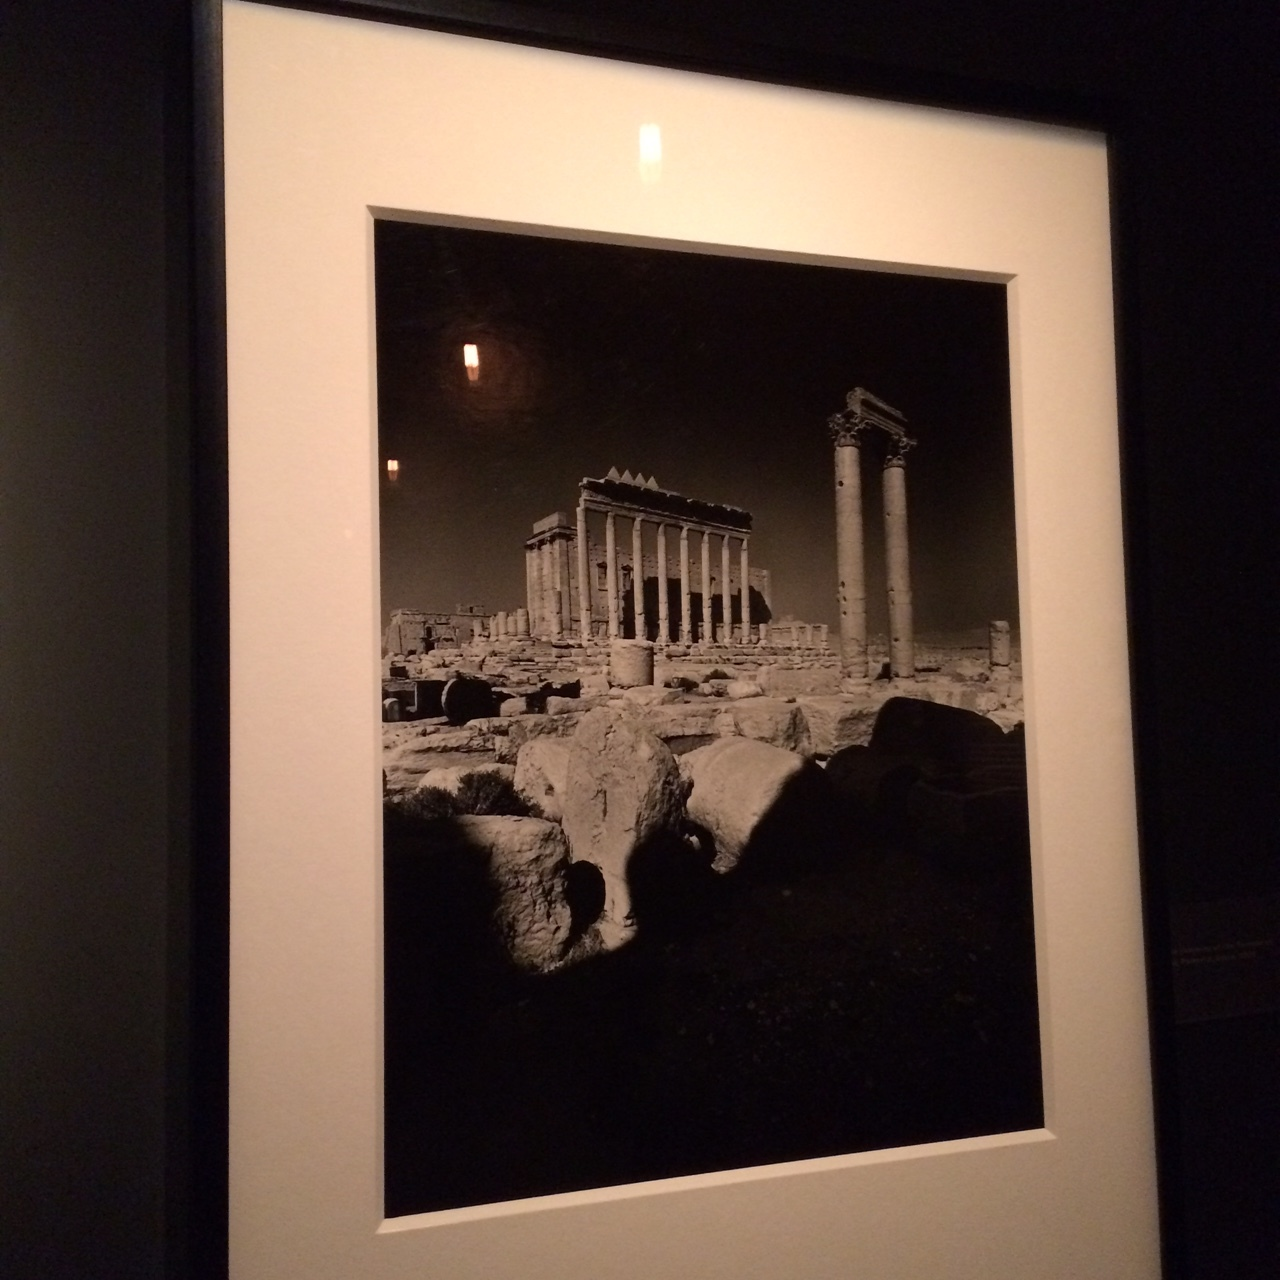 Don McCullin has more recently been photographing the fringes of the Roman Empire. He shot a series in Palmyra within the last decade, which has highlighted again, how easily history comes back to haunt us, and for me,why it is important to record our lives today. Things can change very quickly.